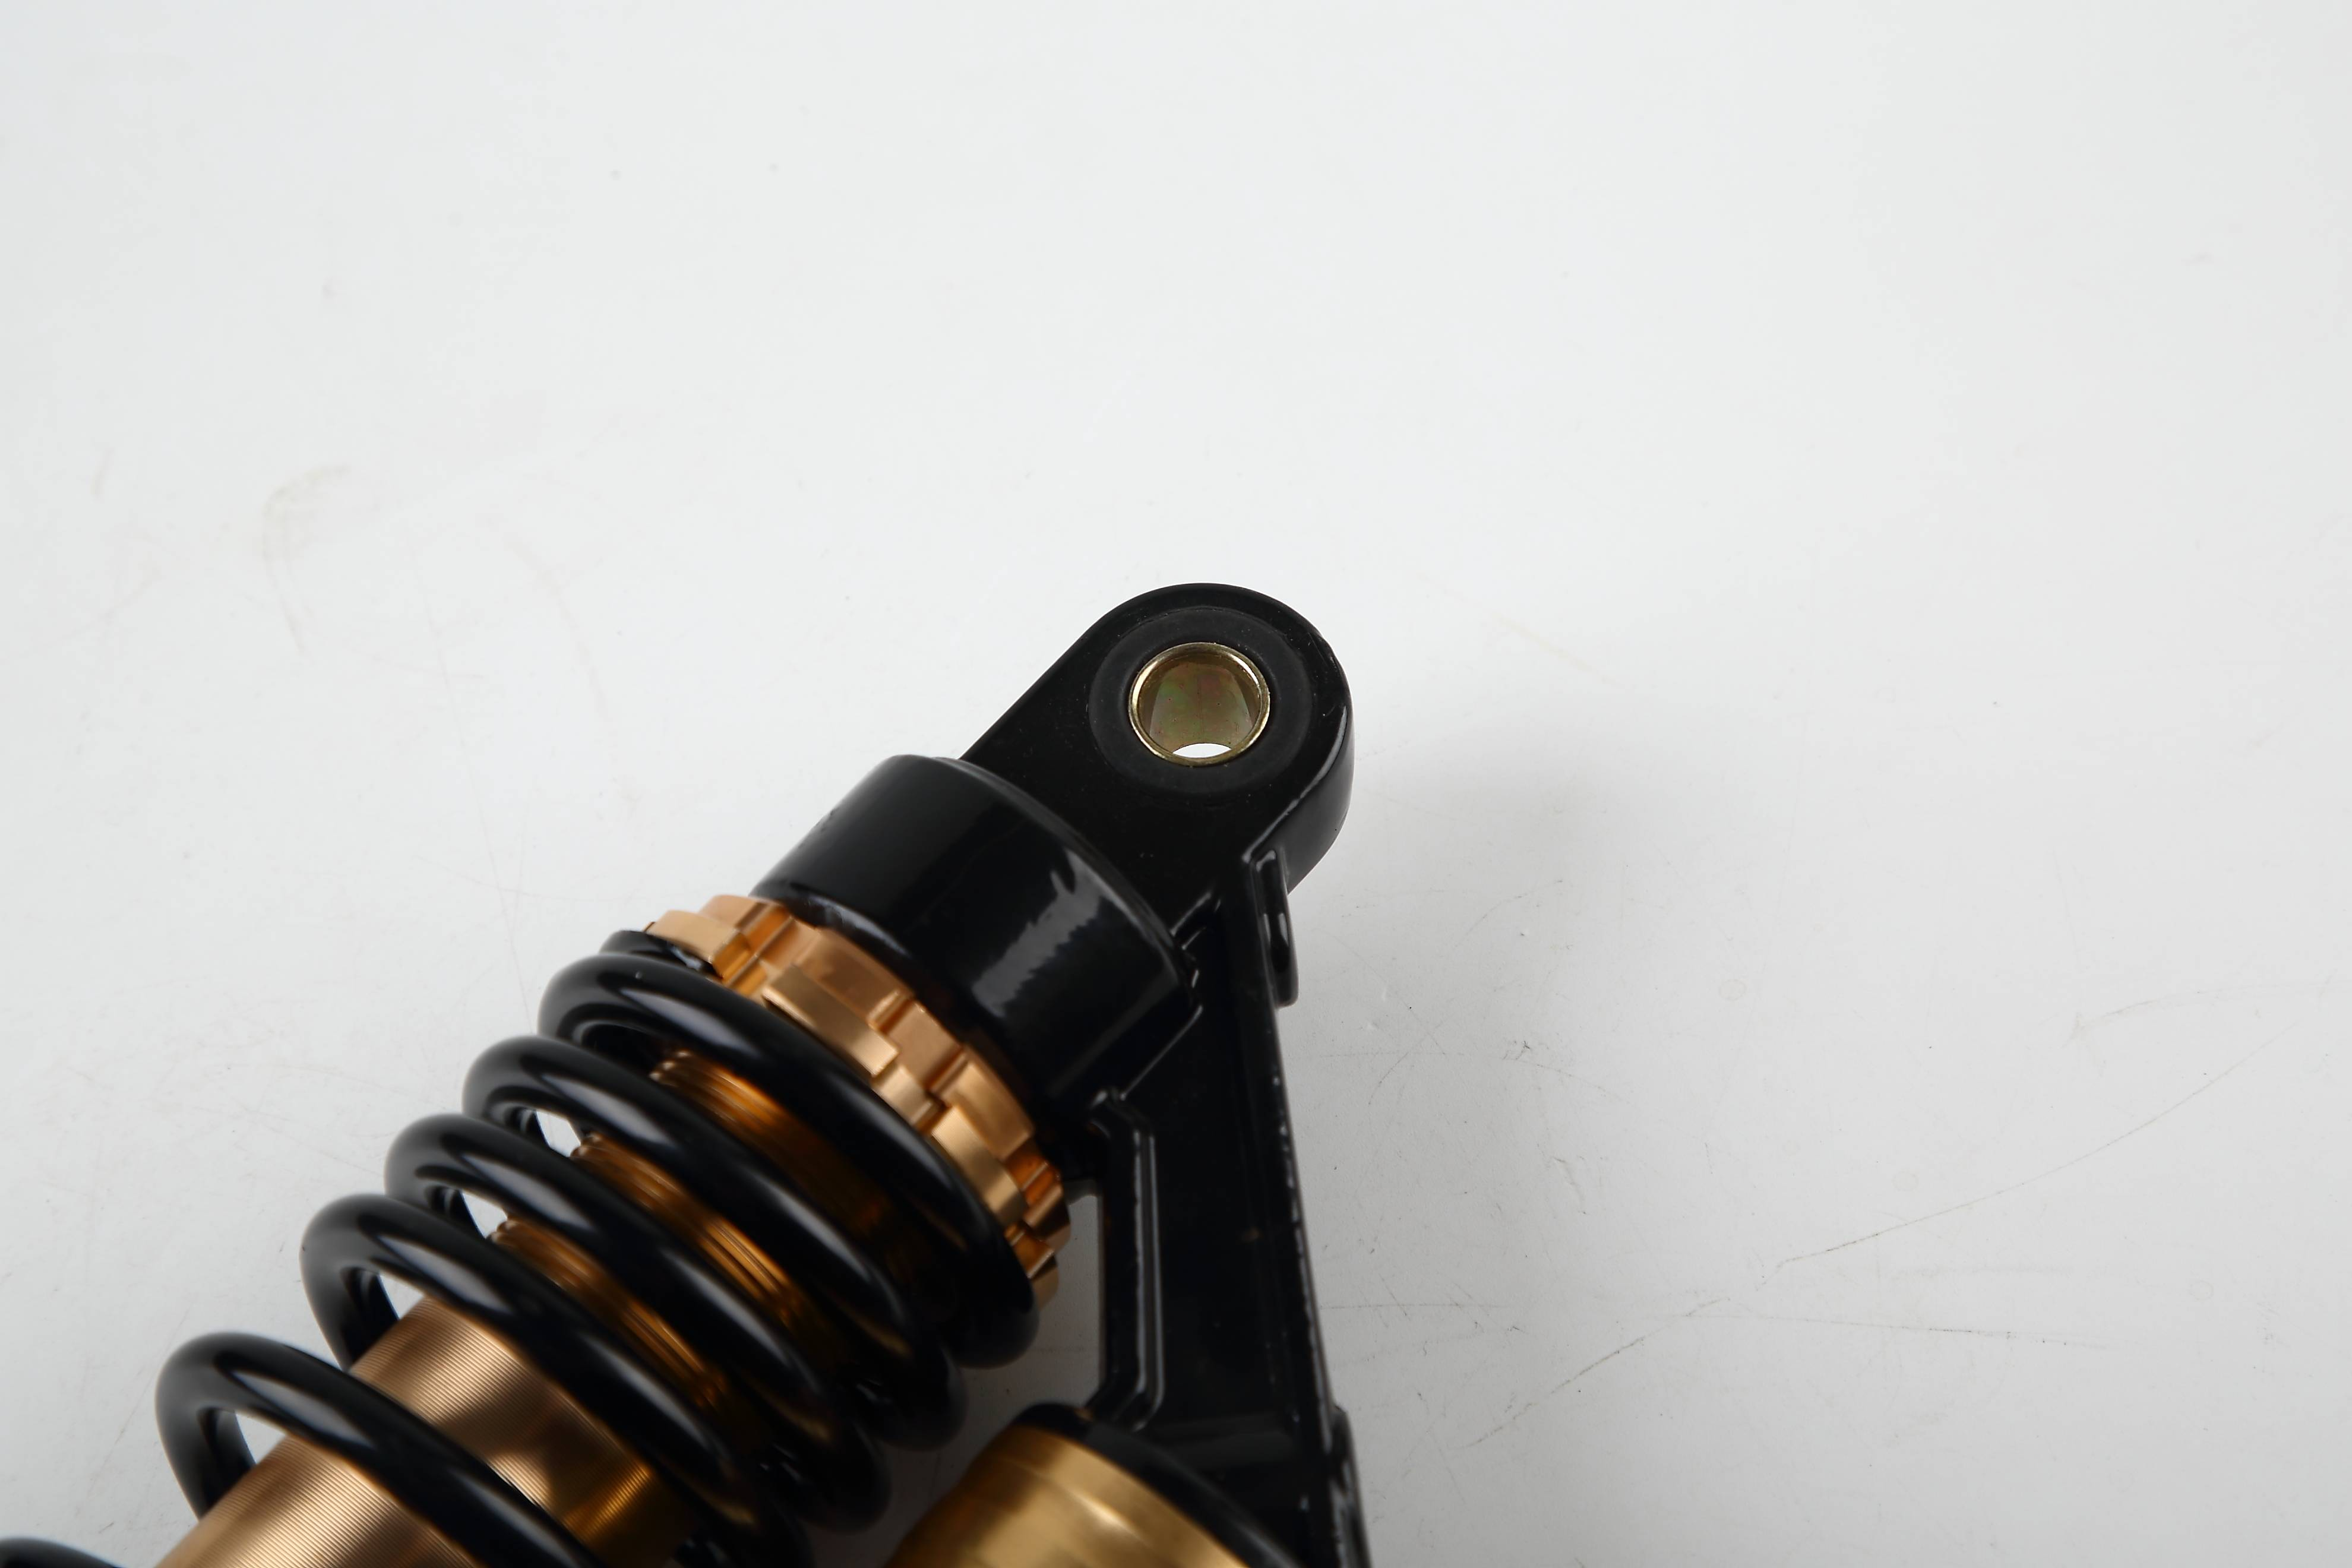 R231 yellow and black rear shock absorber/damper for motorcycles, pit dirt bikes with air bag